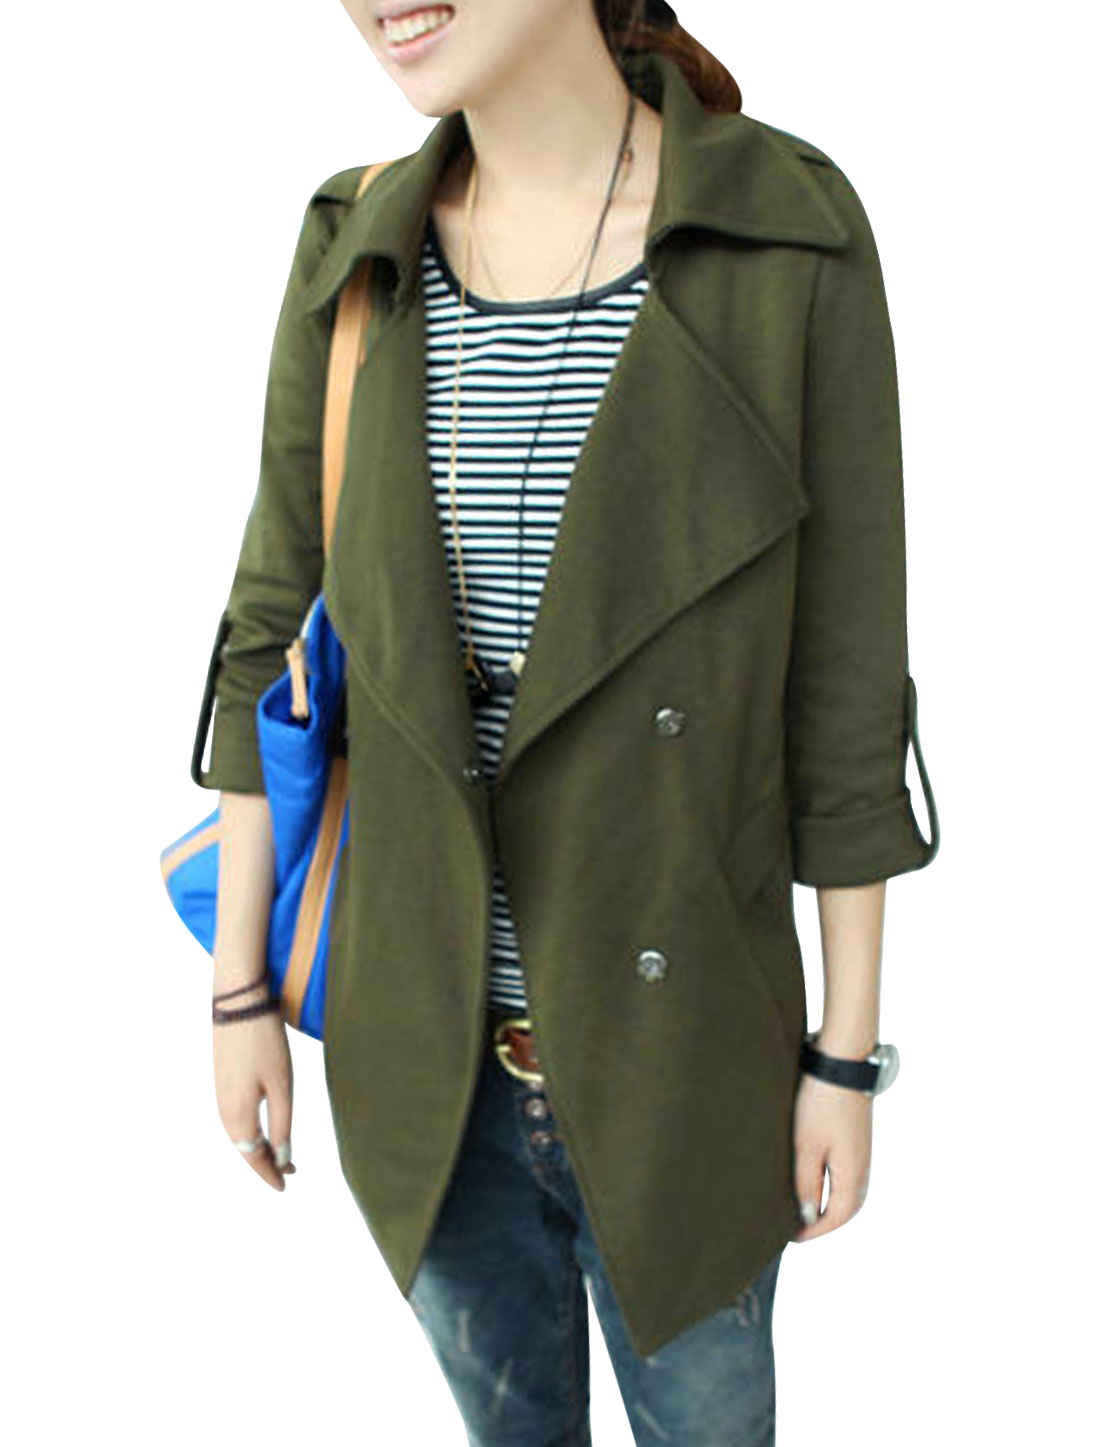 Ladies Army Green Turn Down Collar Long Sleeves Hidden Button Closure Trench Jacket S